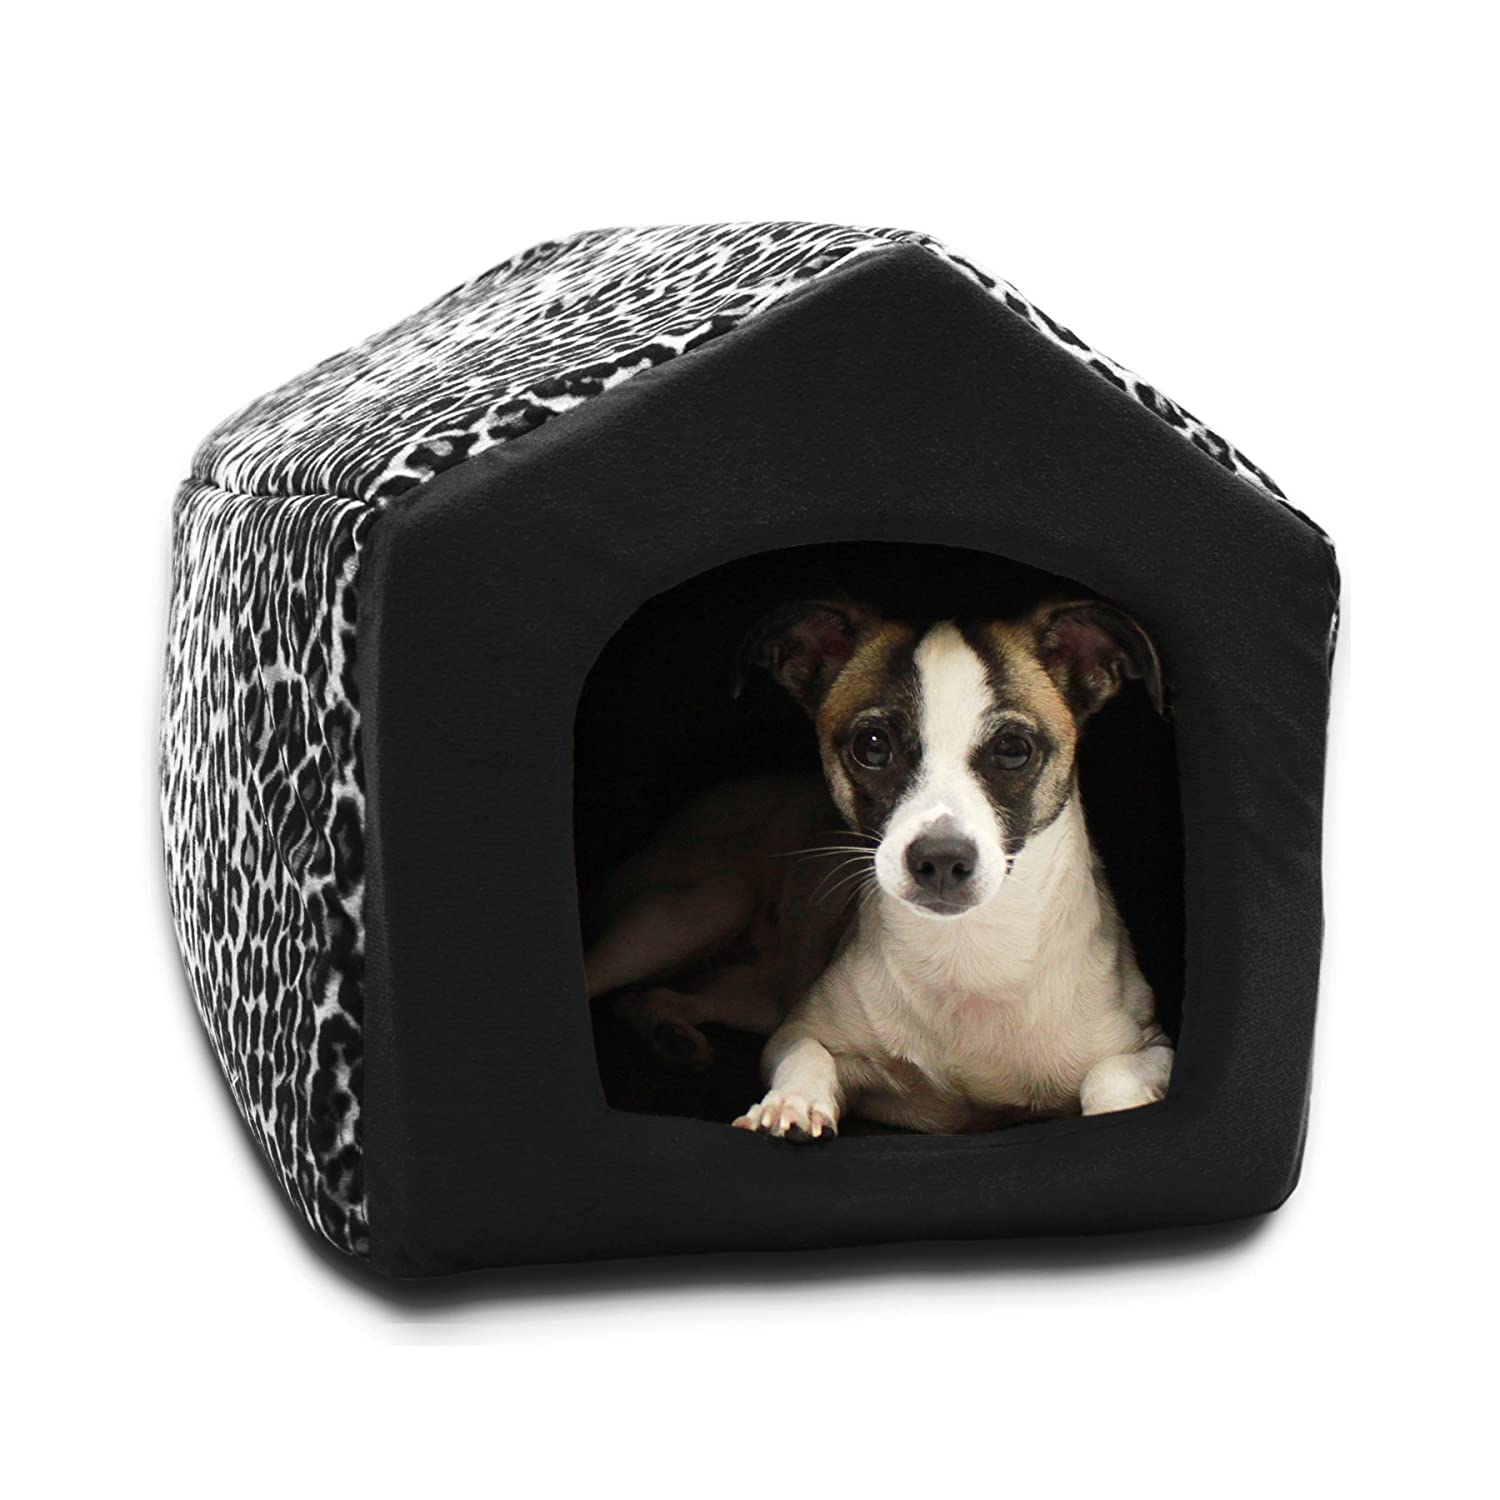 New pet puppy dog house indoor sofa bed couch cute soft Dog house sofa